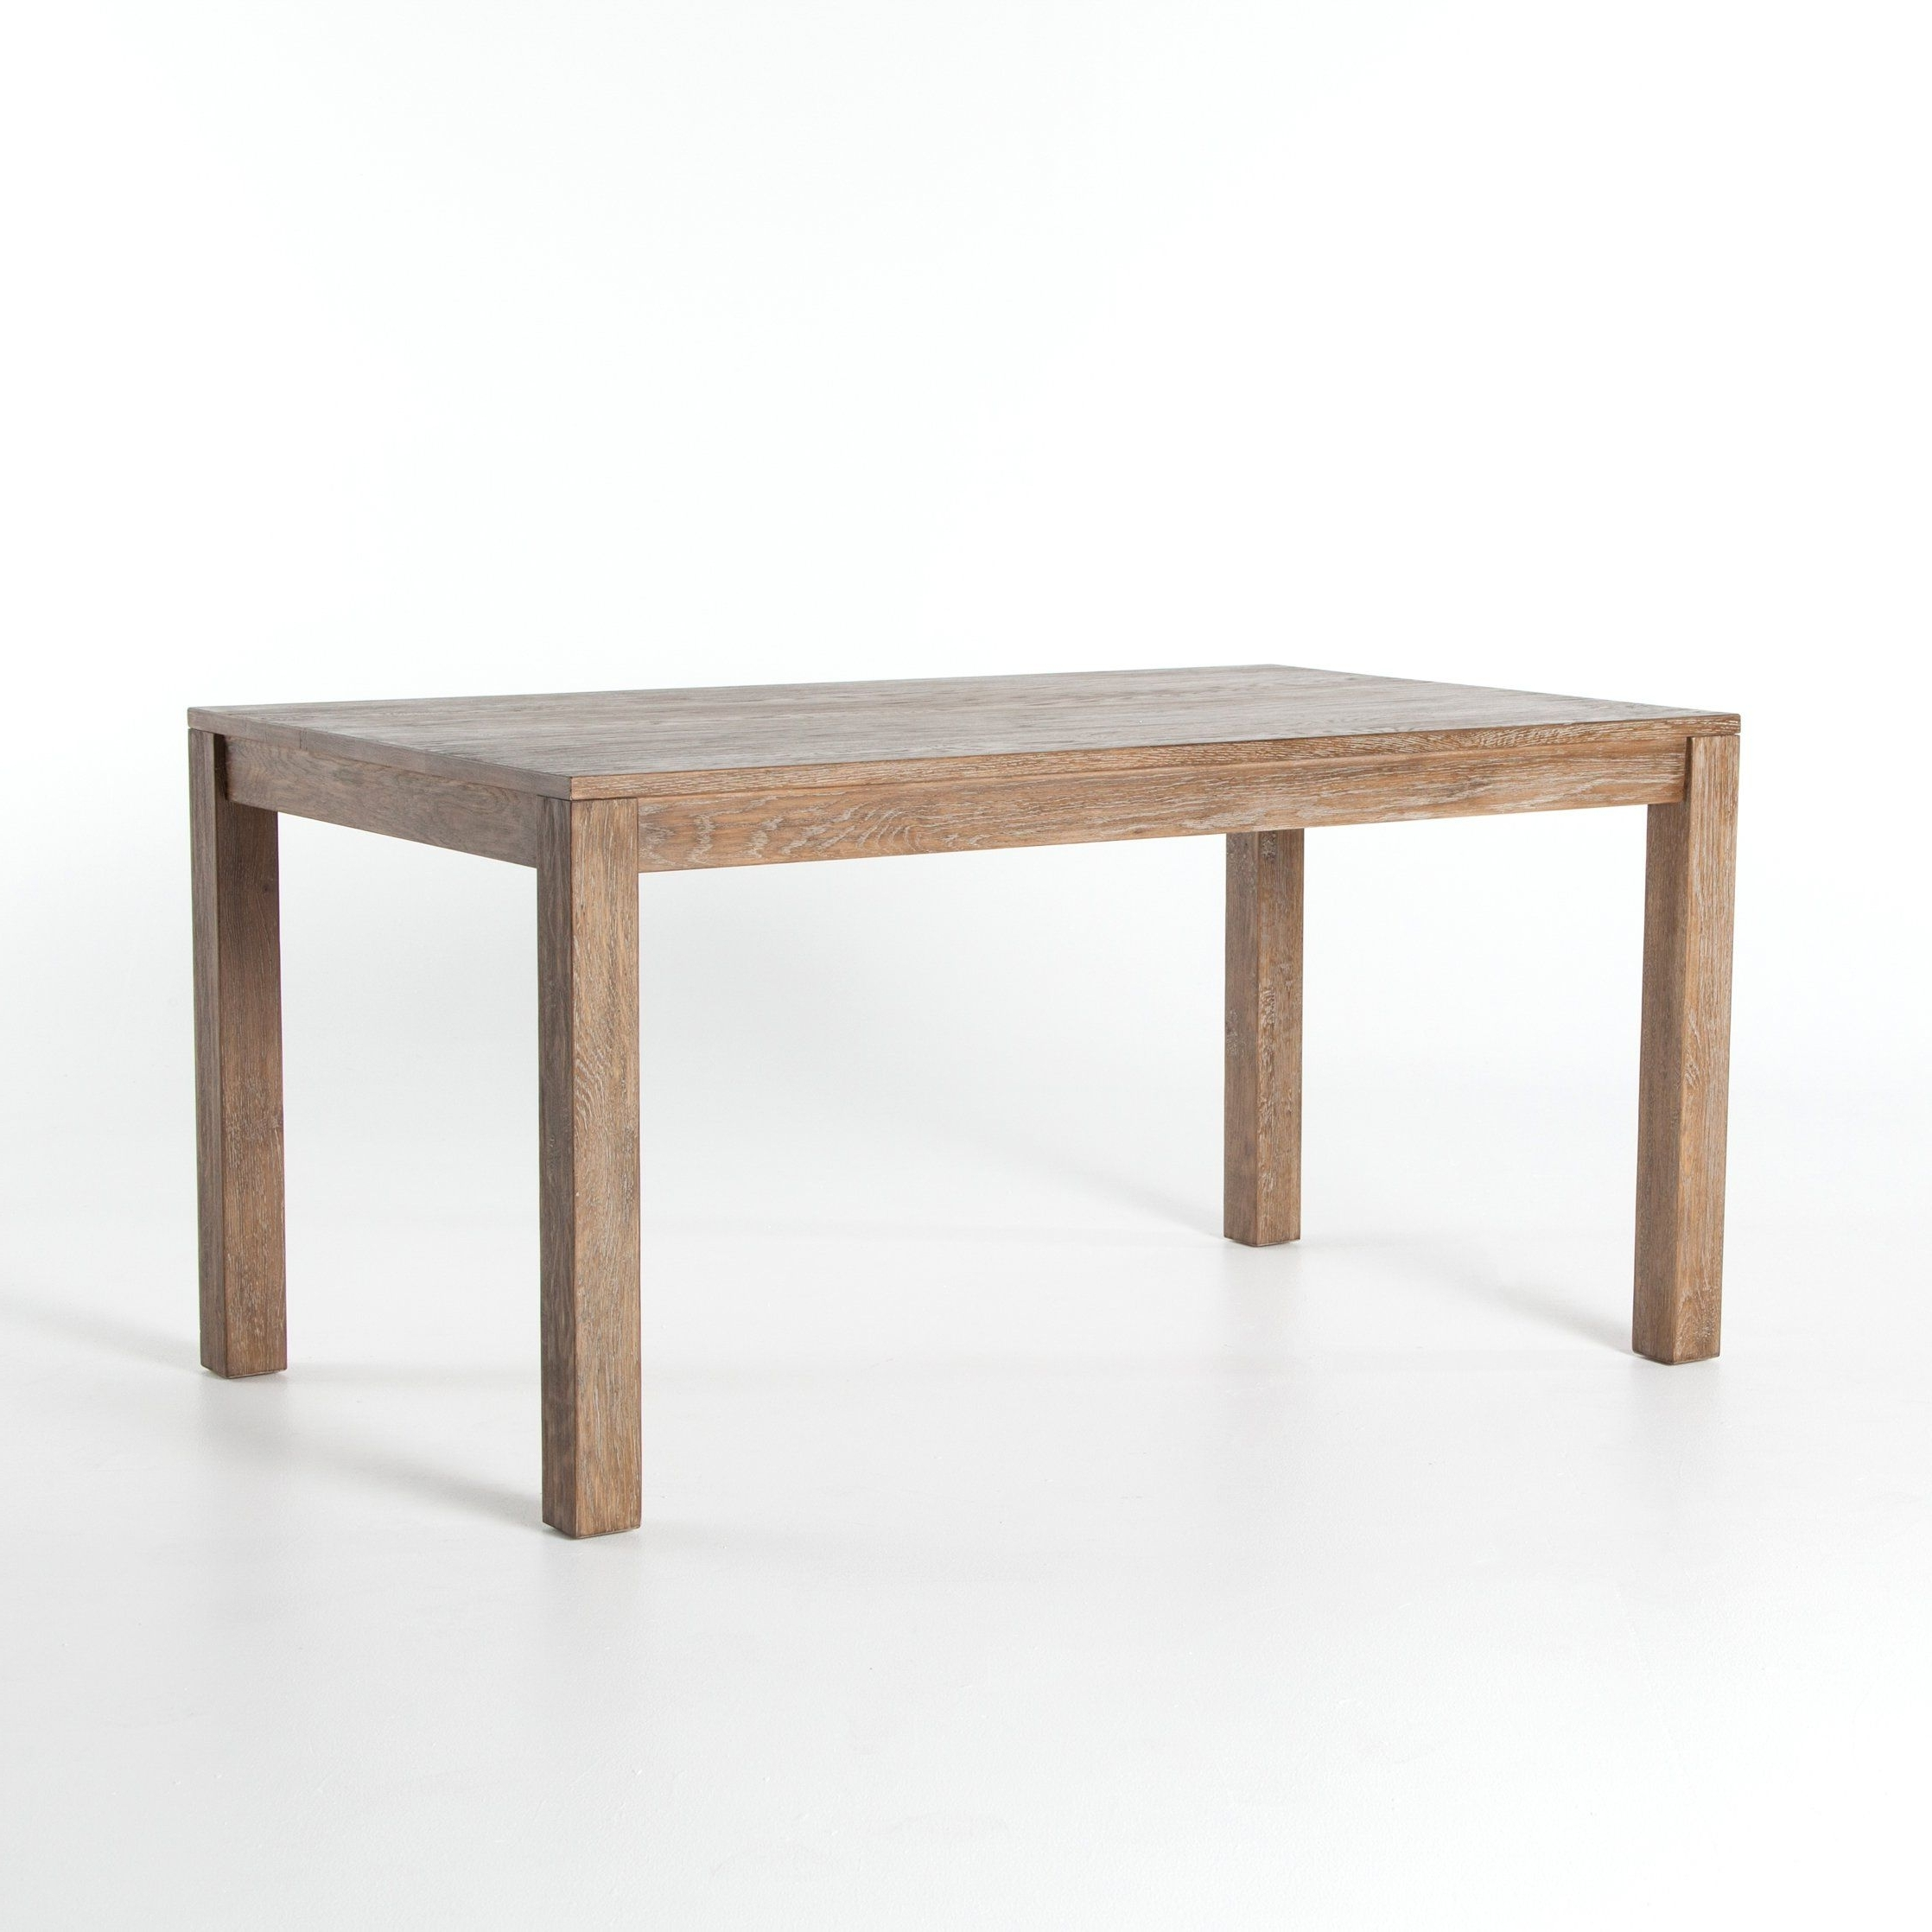 Caden Rectangle Dining Tables Intended For Well Known Caden Dining Table: Light Burnt Oak (View 6 of 25)